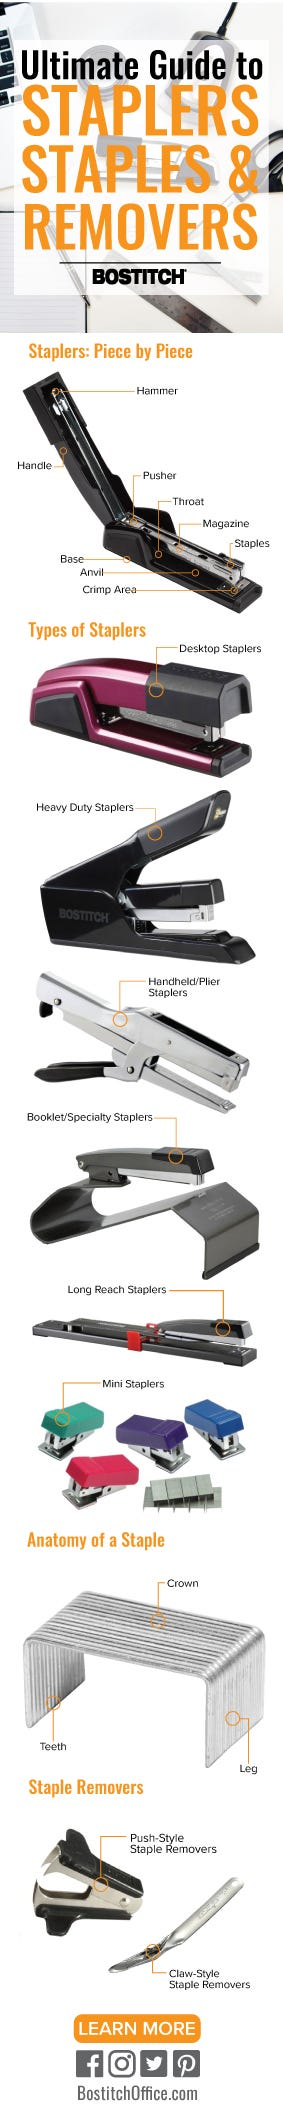 Articles - Your Ultimate Guide to Staplers, Staples & Removers